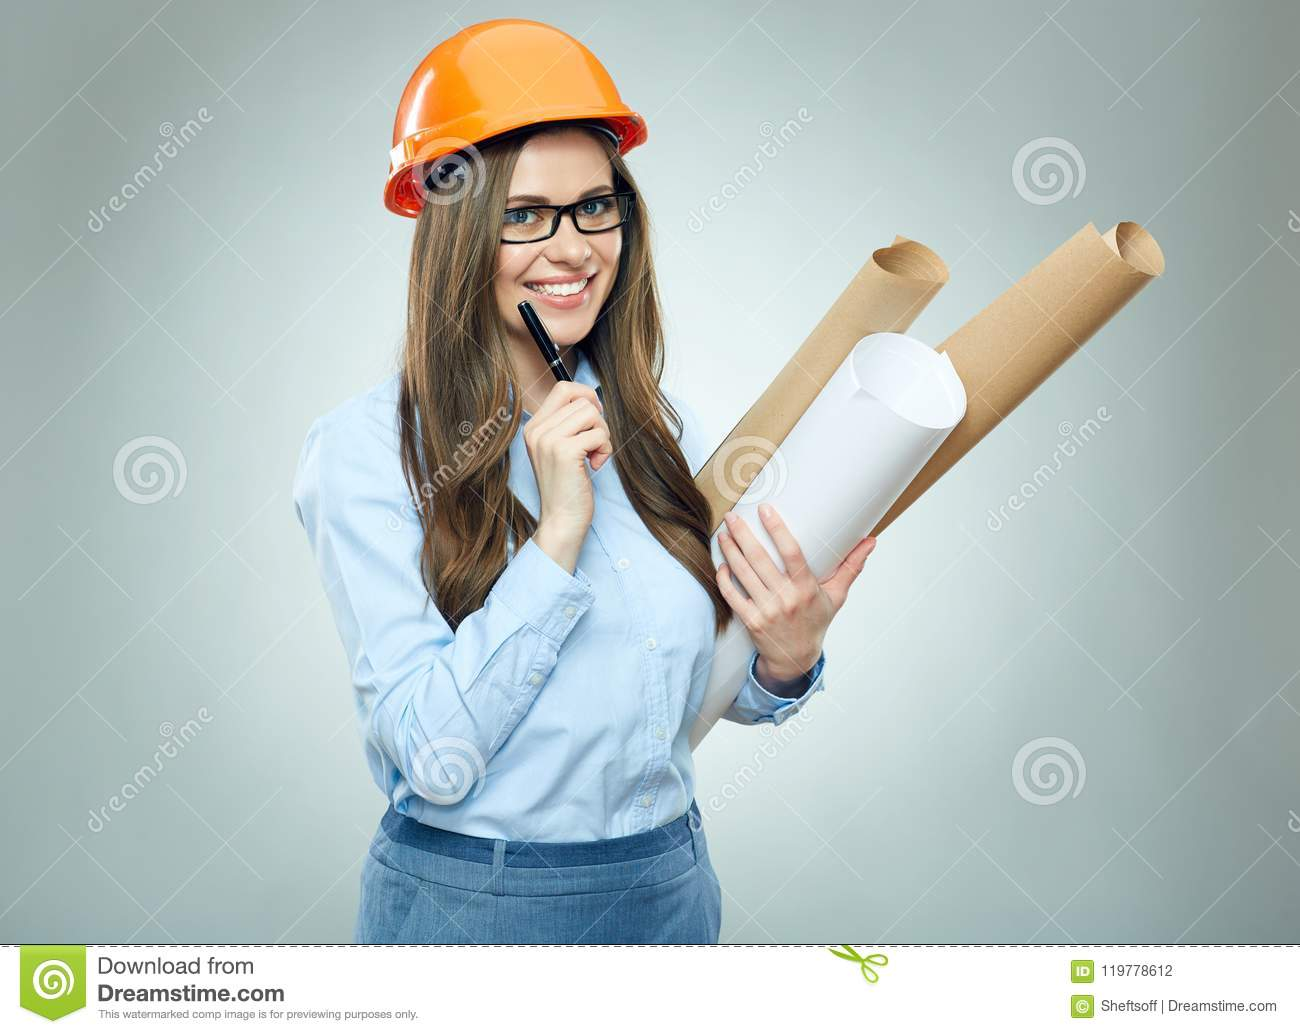 Student girl architect wearing glasses holding rolled up technical drawing.